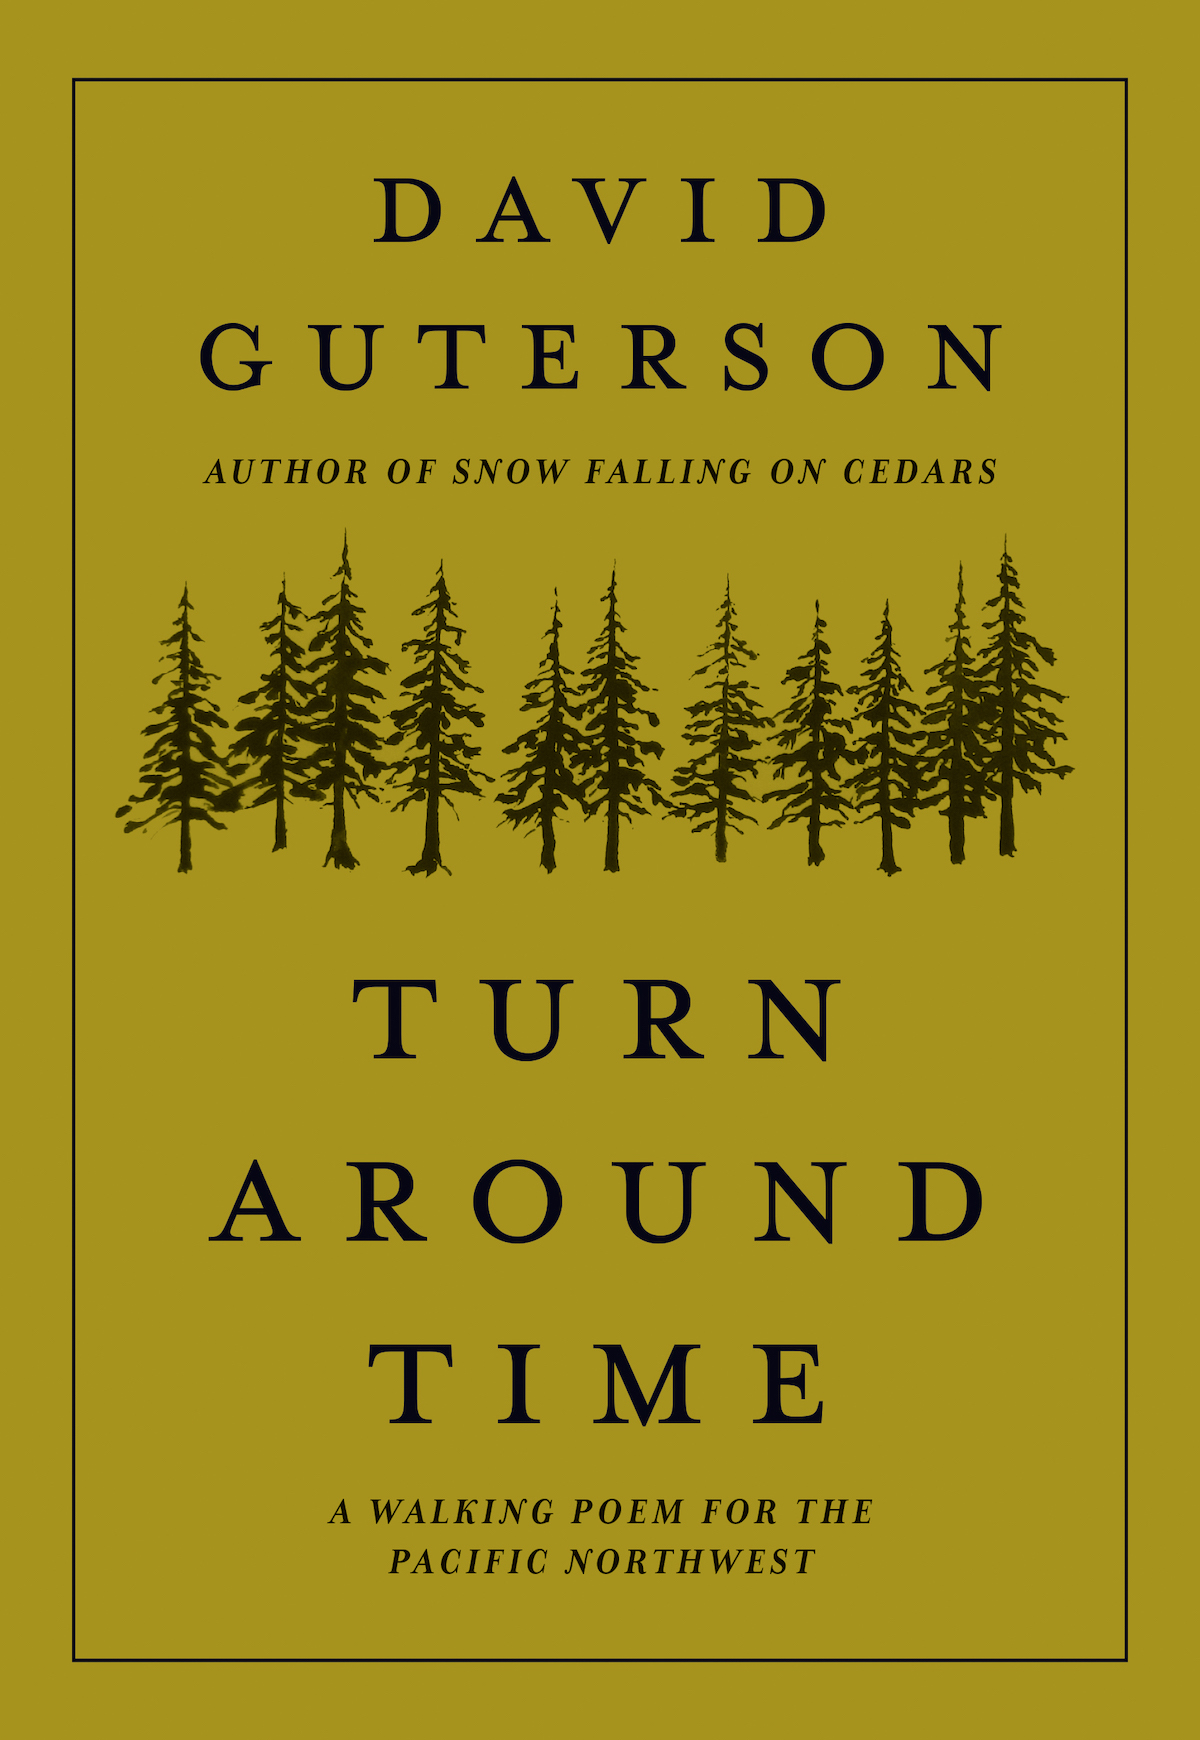 [Cover] Turn Around Time: A Walking Poem for the Pacific Northwest. David Guterson. Illustrations by Justin Gibbens. Mountaineers Books. Hardcover, 144 Pages. $21.95.